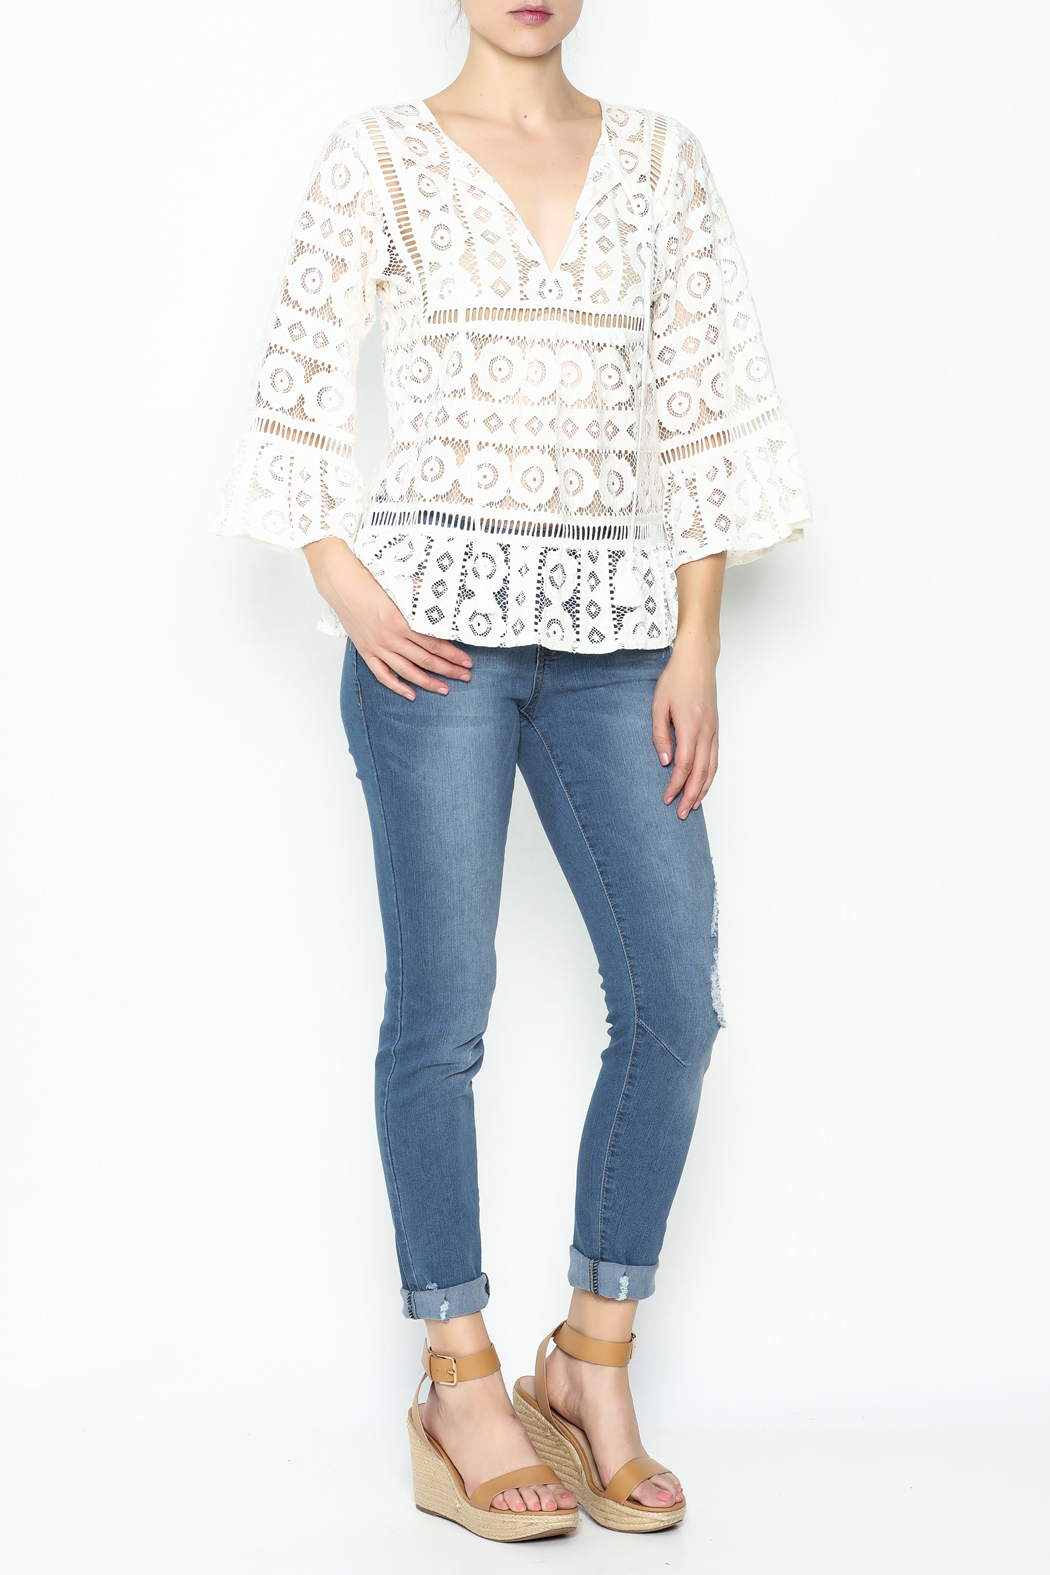 Tracy Reese Lace Blouse - Side Cropped Image